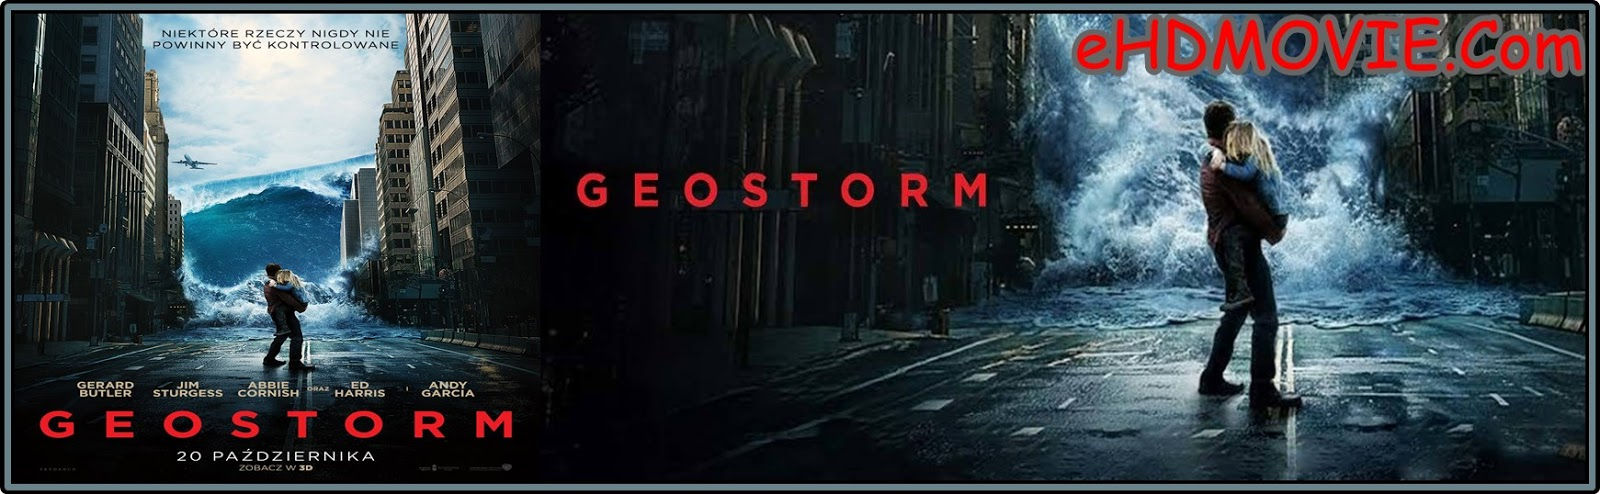 Geostorm 2017 Full Movie English 720p - 480p ORG BRRip 400MB - 900MB ESubs Free Download